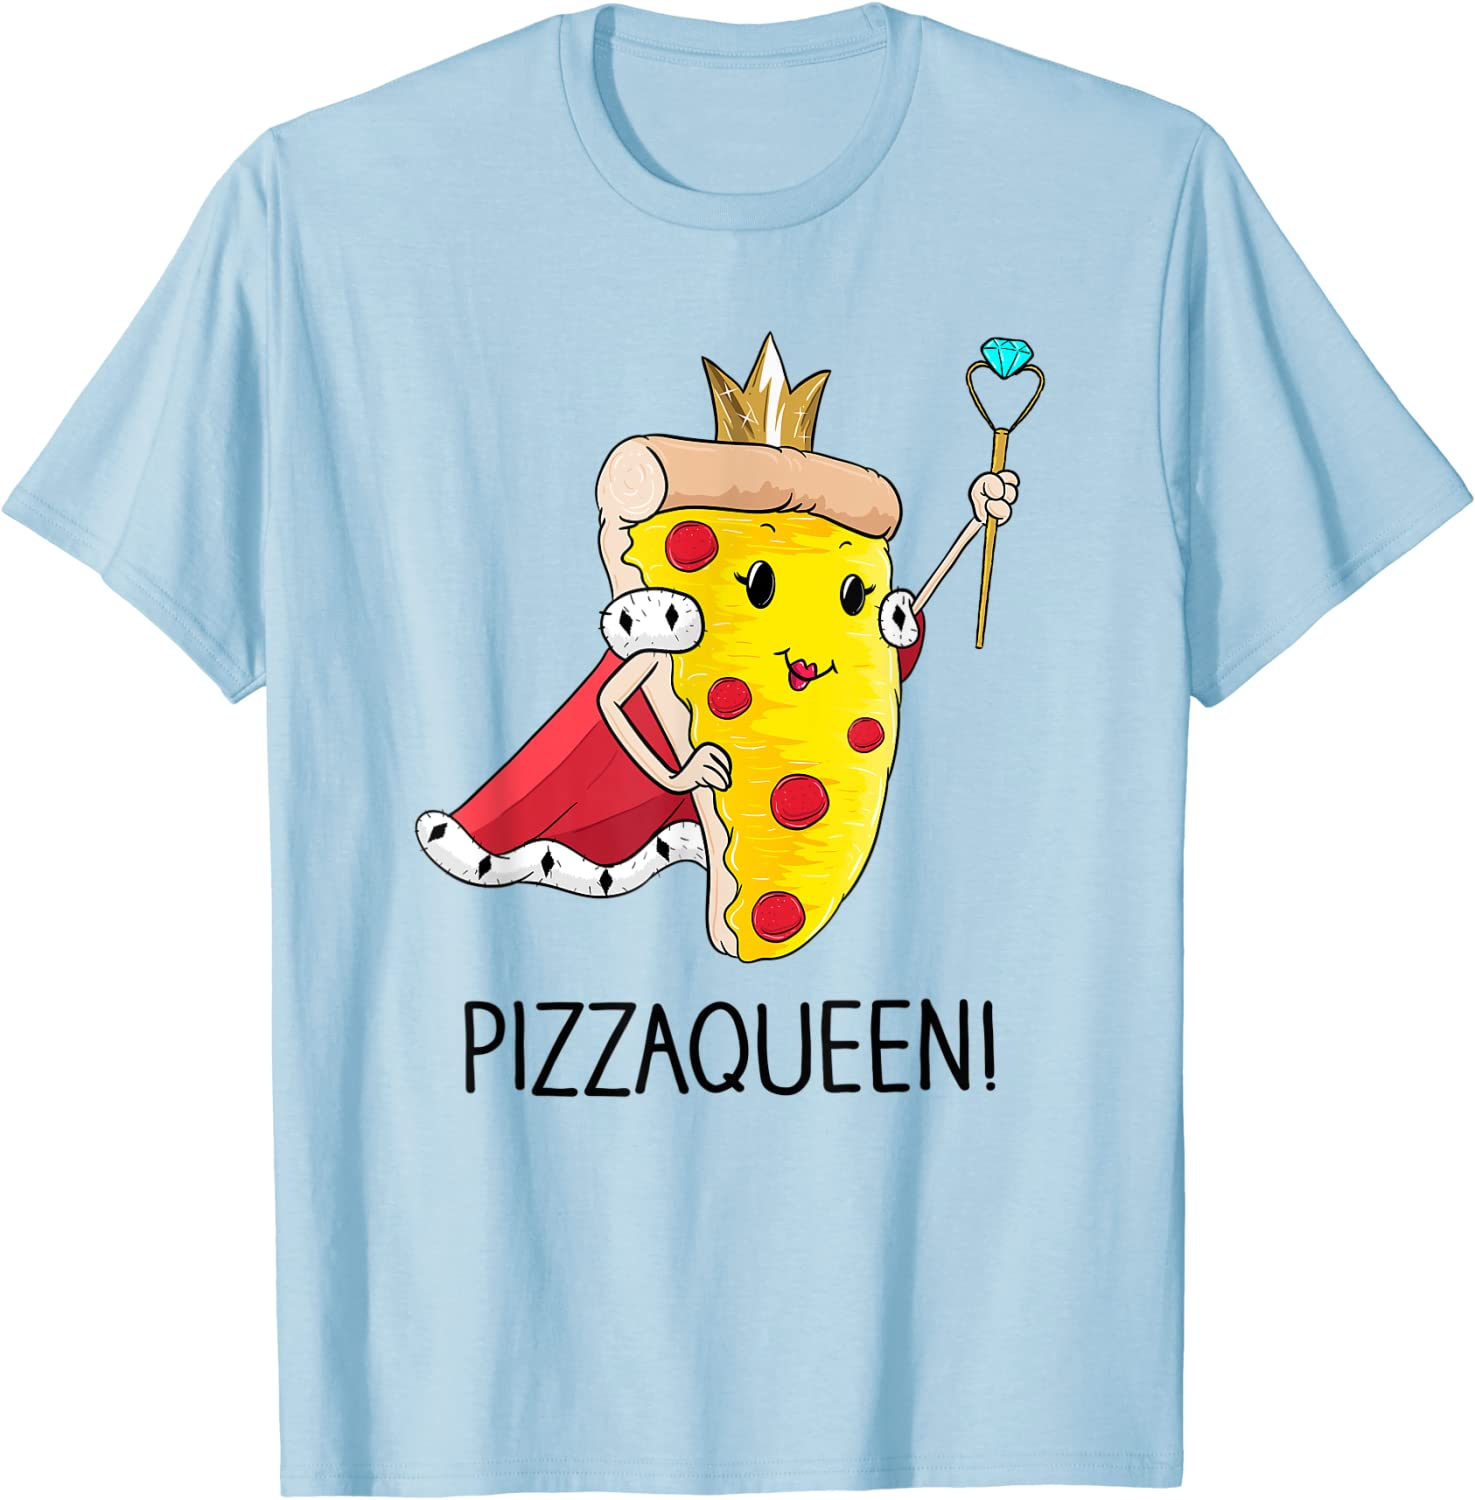 Kids Funny Pizza Queen Shirt salami pizza fast food girl T-Shirt